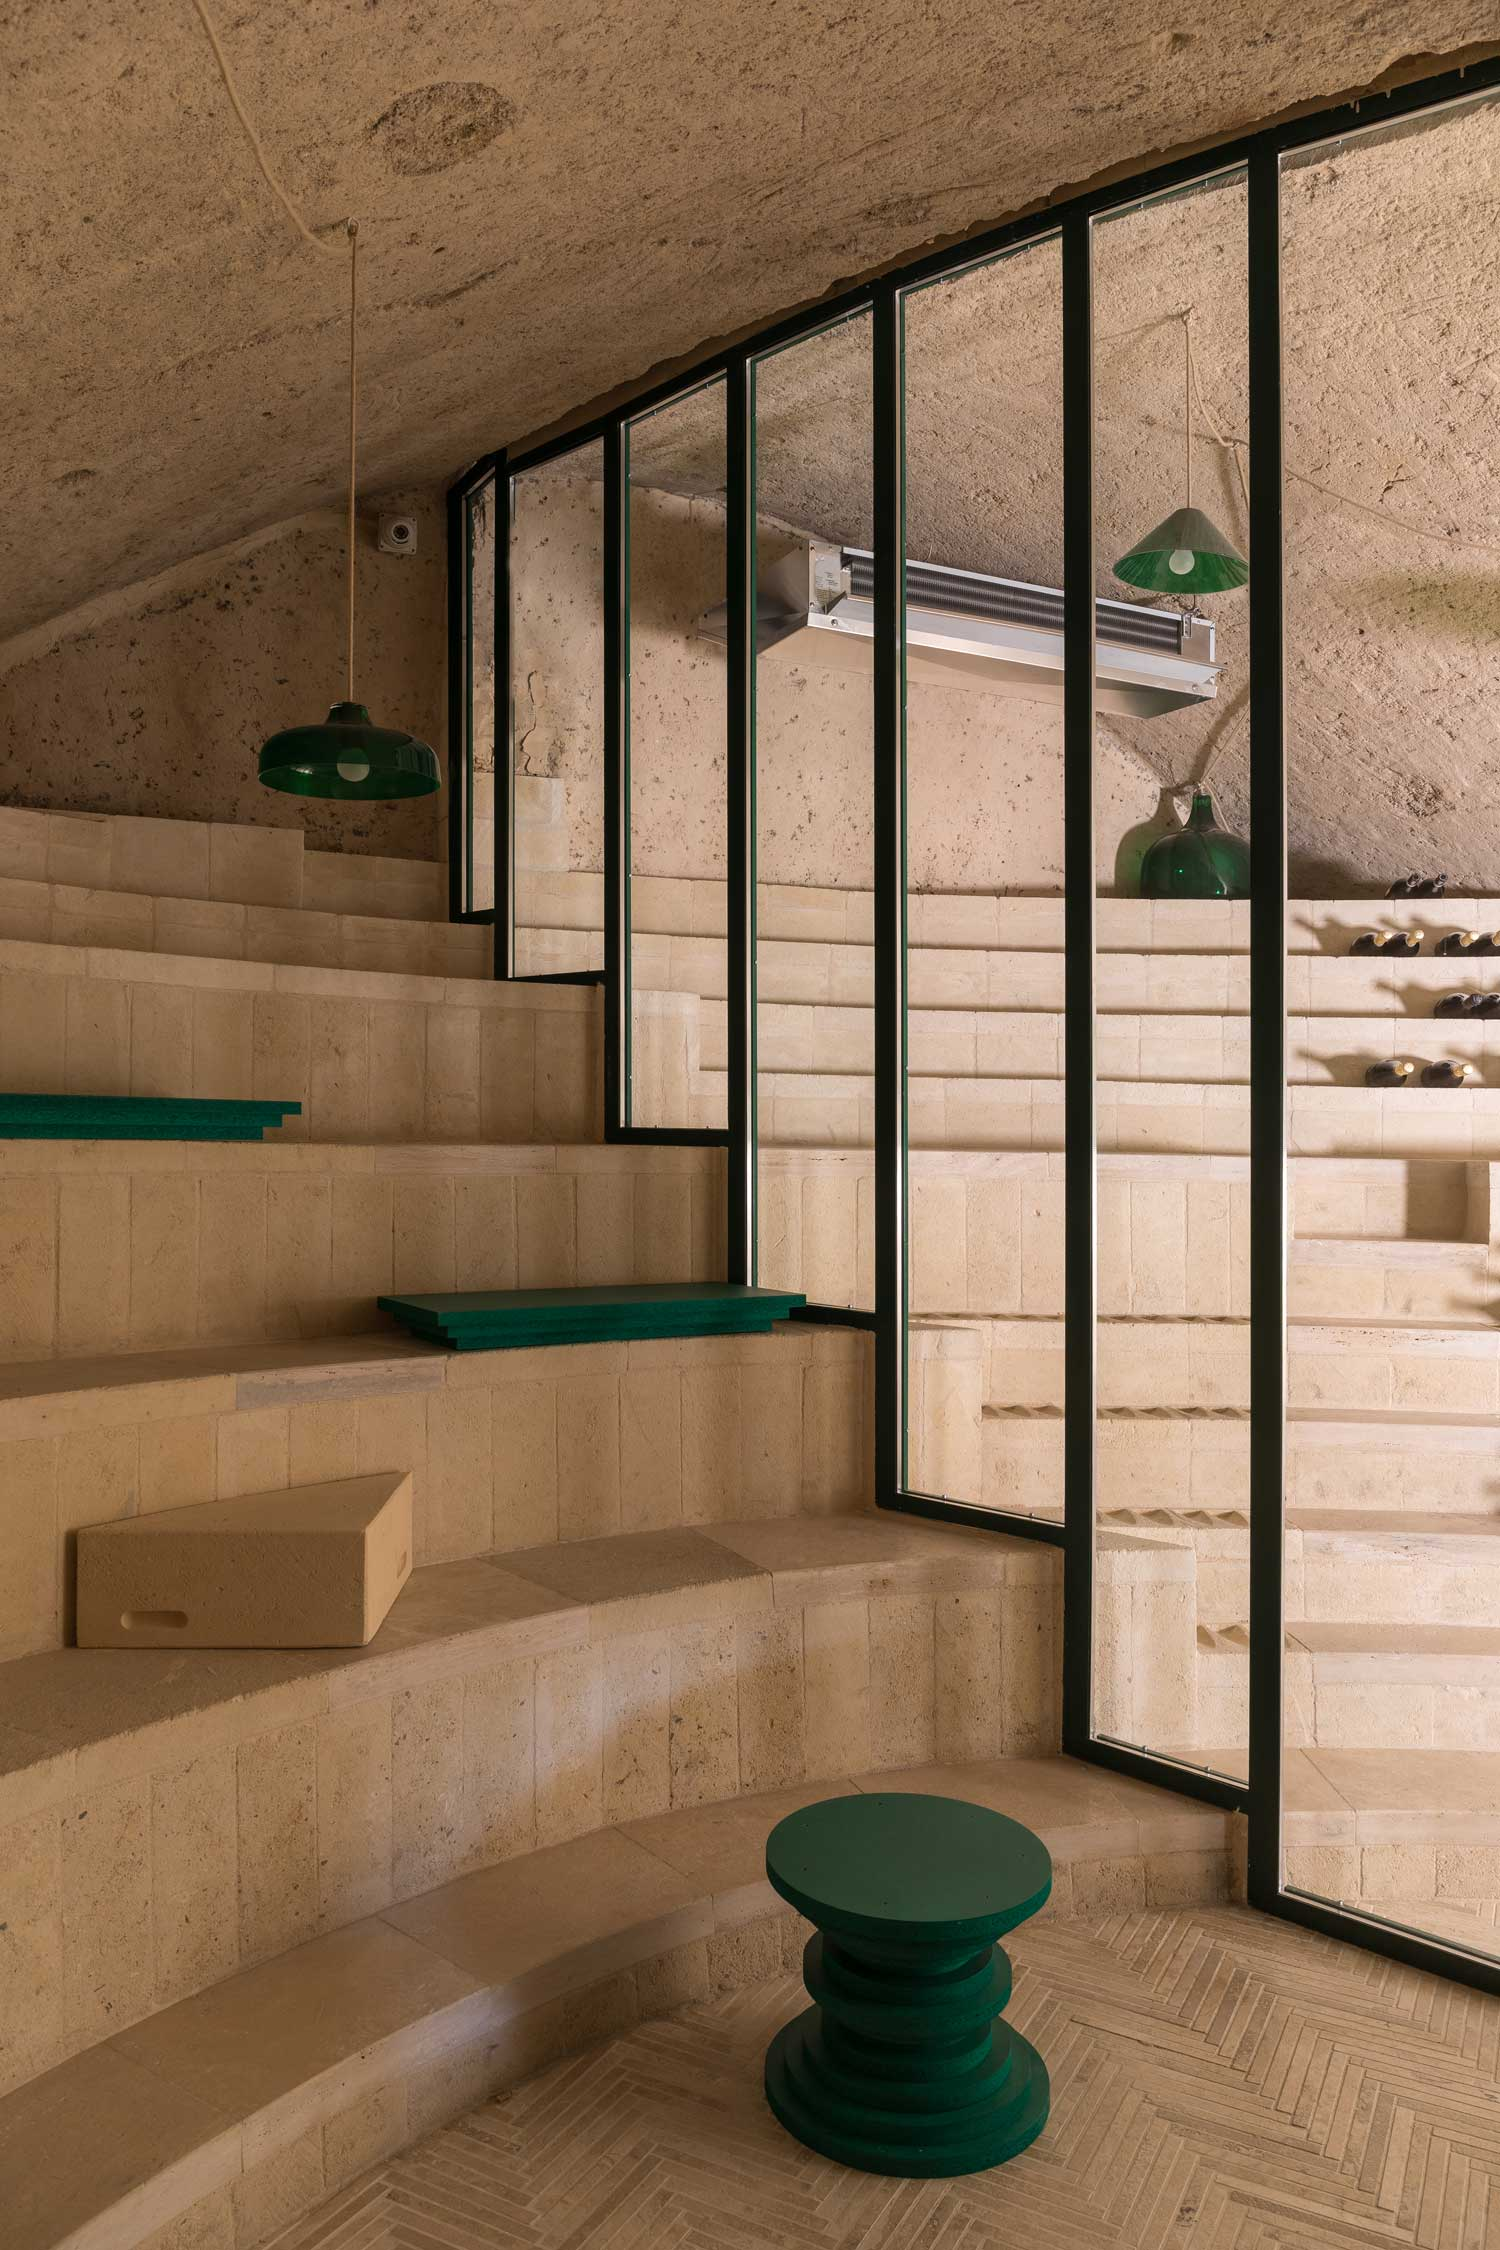 Enoteca dai Tosi: Wine Bar Carved Into a Mountain in Matera, Italy, Designed by Architecten De Vylder Vinck Taillieu | Yellowtrace